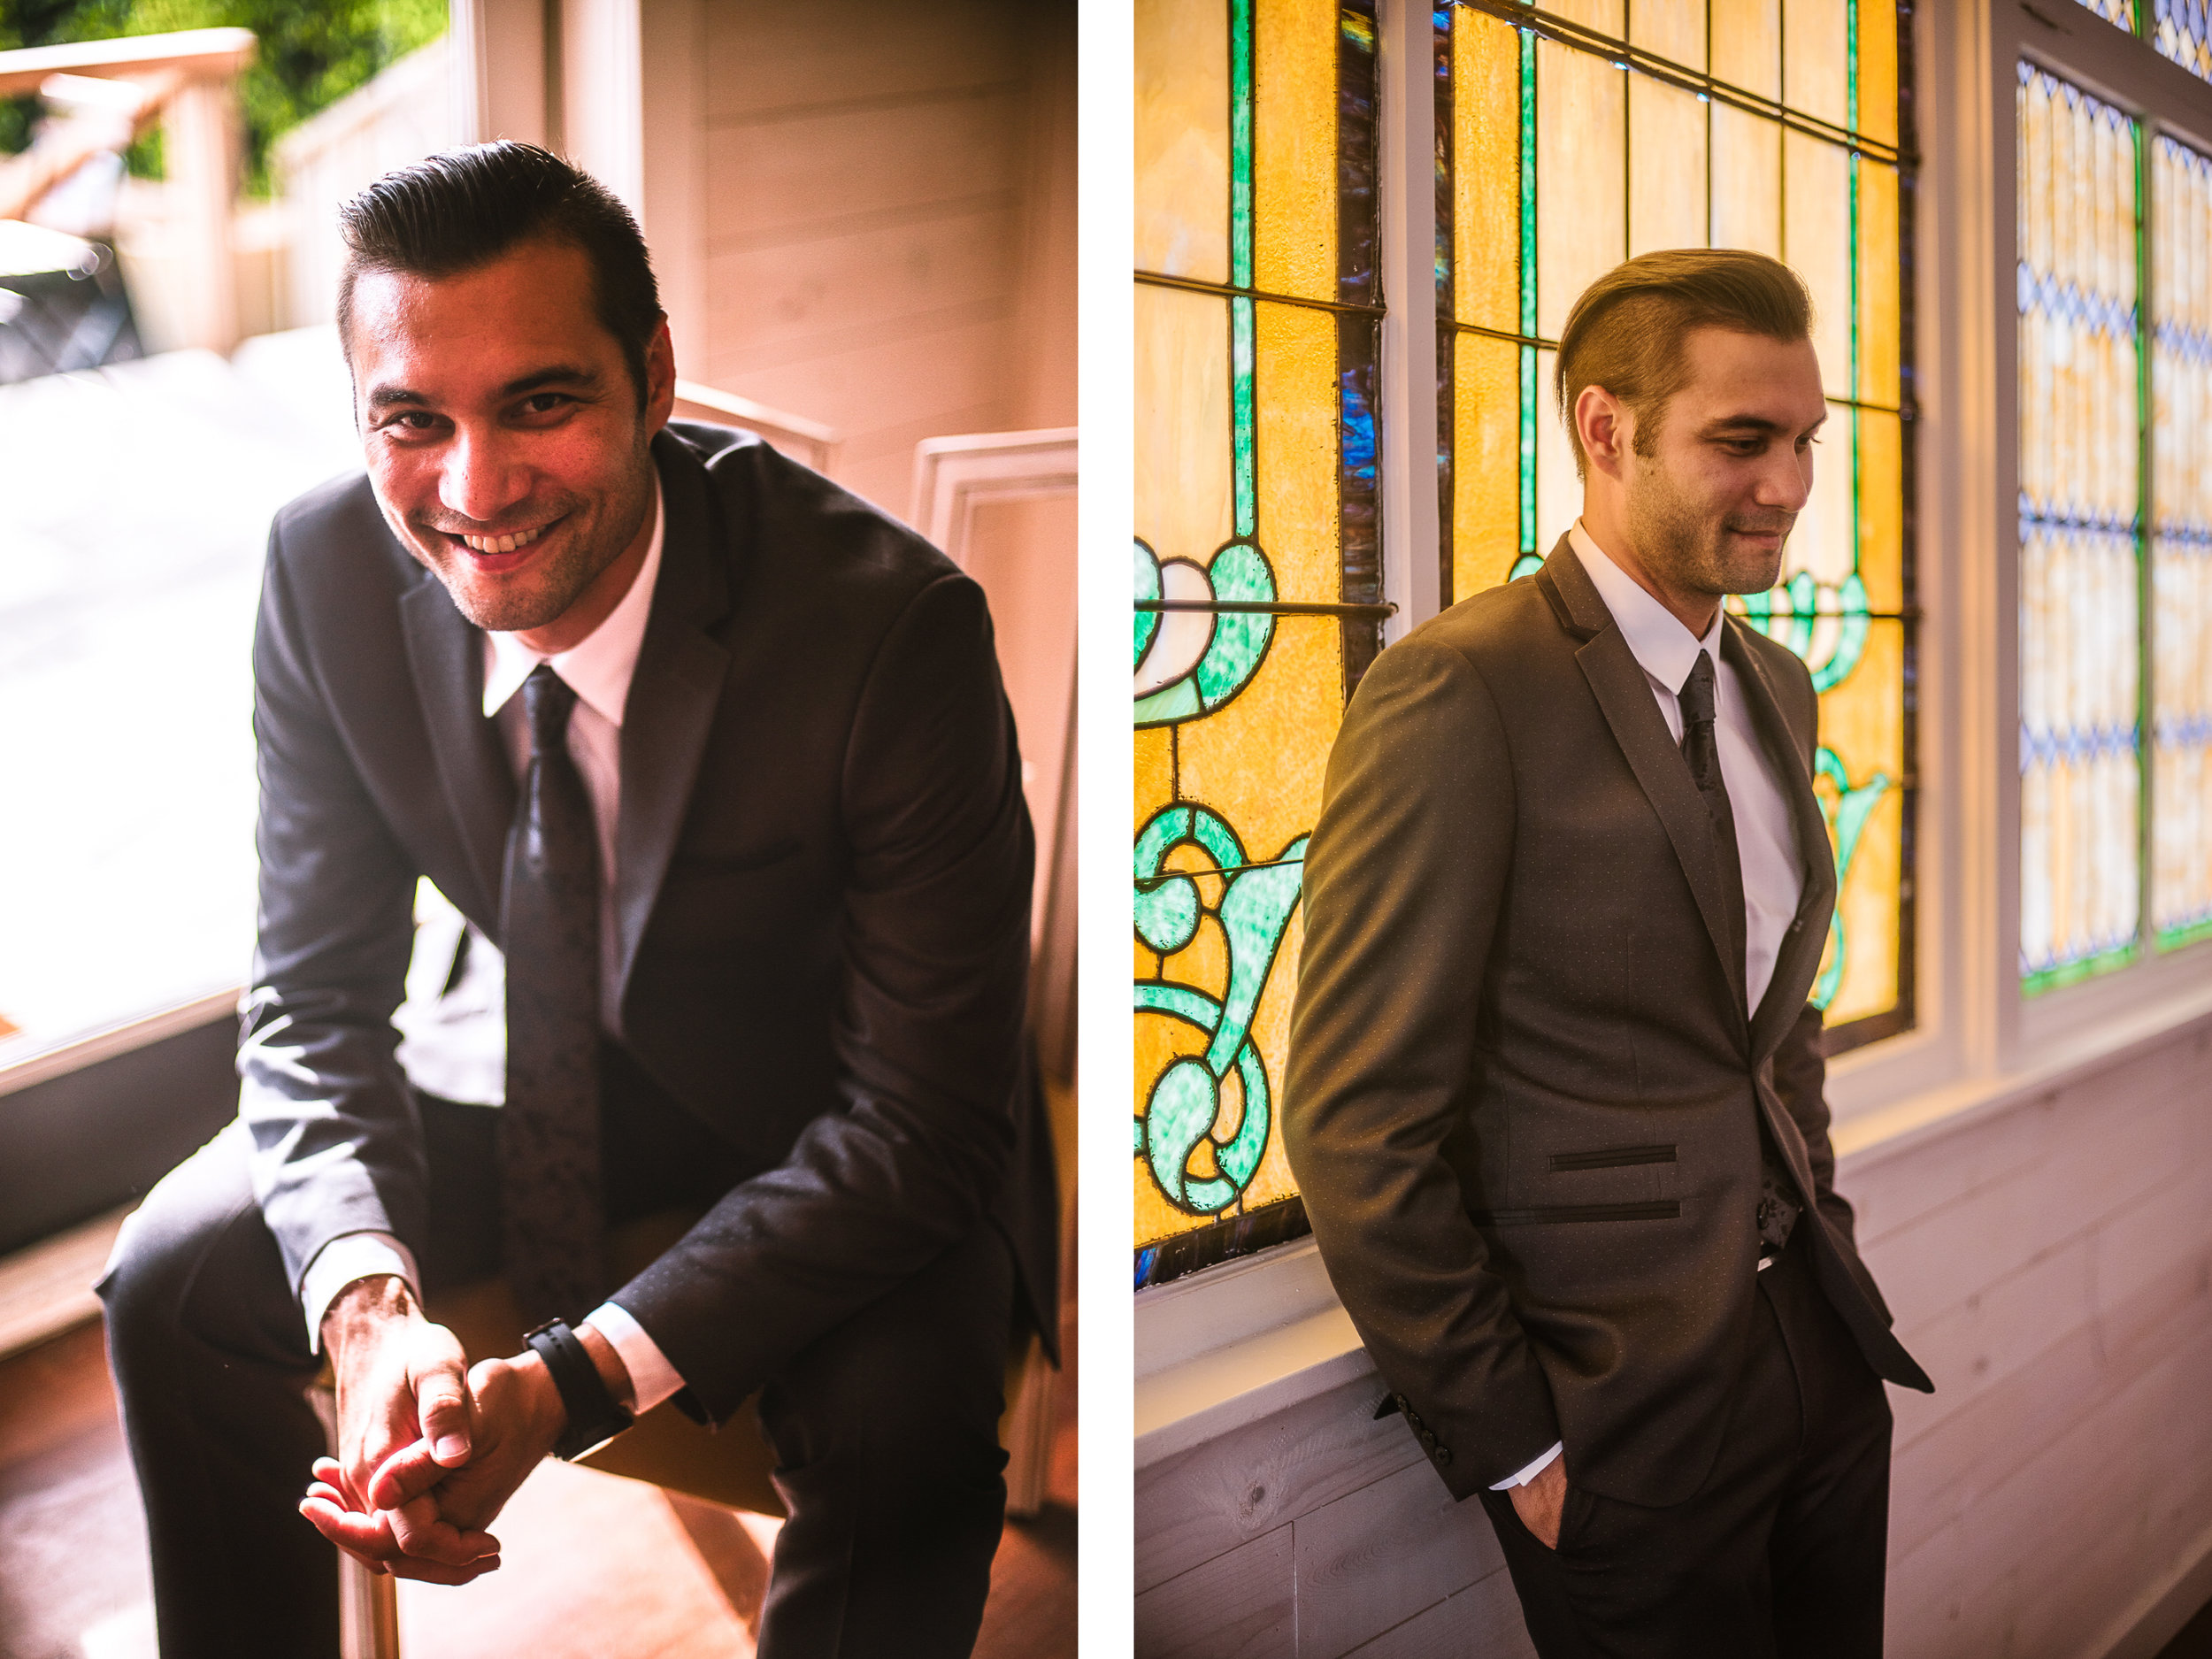 san diego wedding   photographer   collage of groom posing and leaning against stained glass